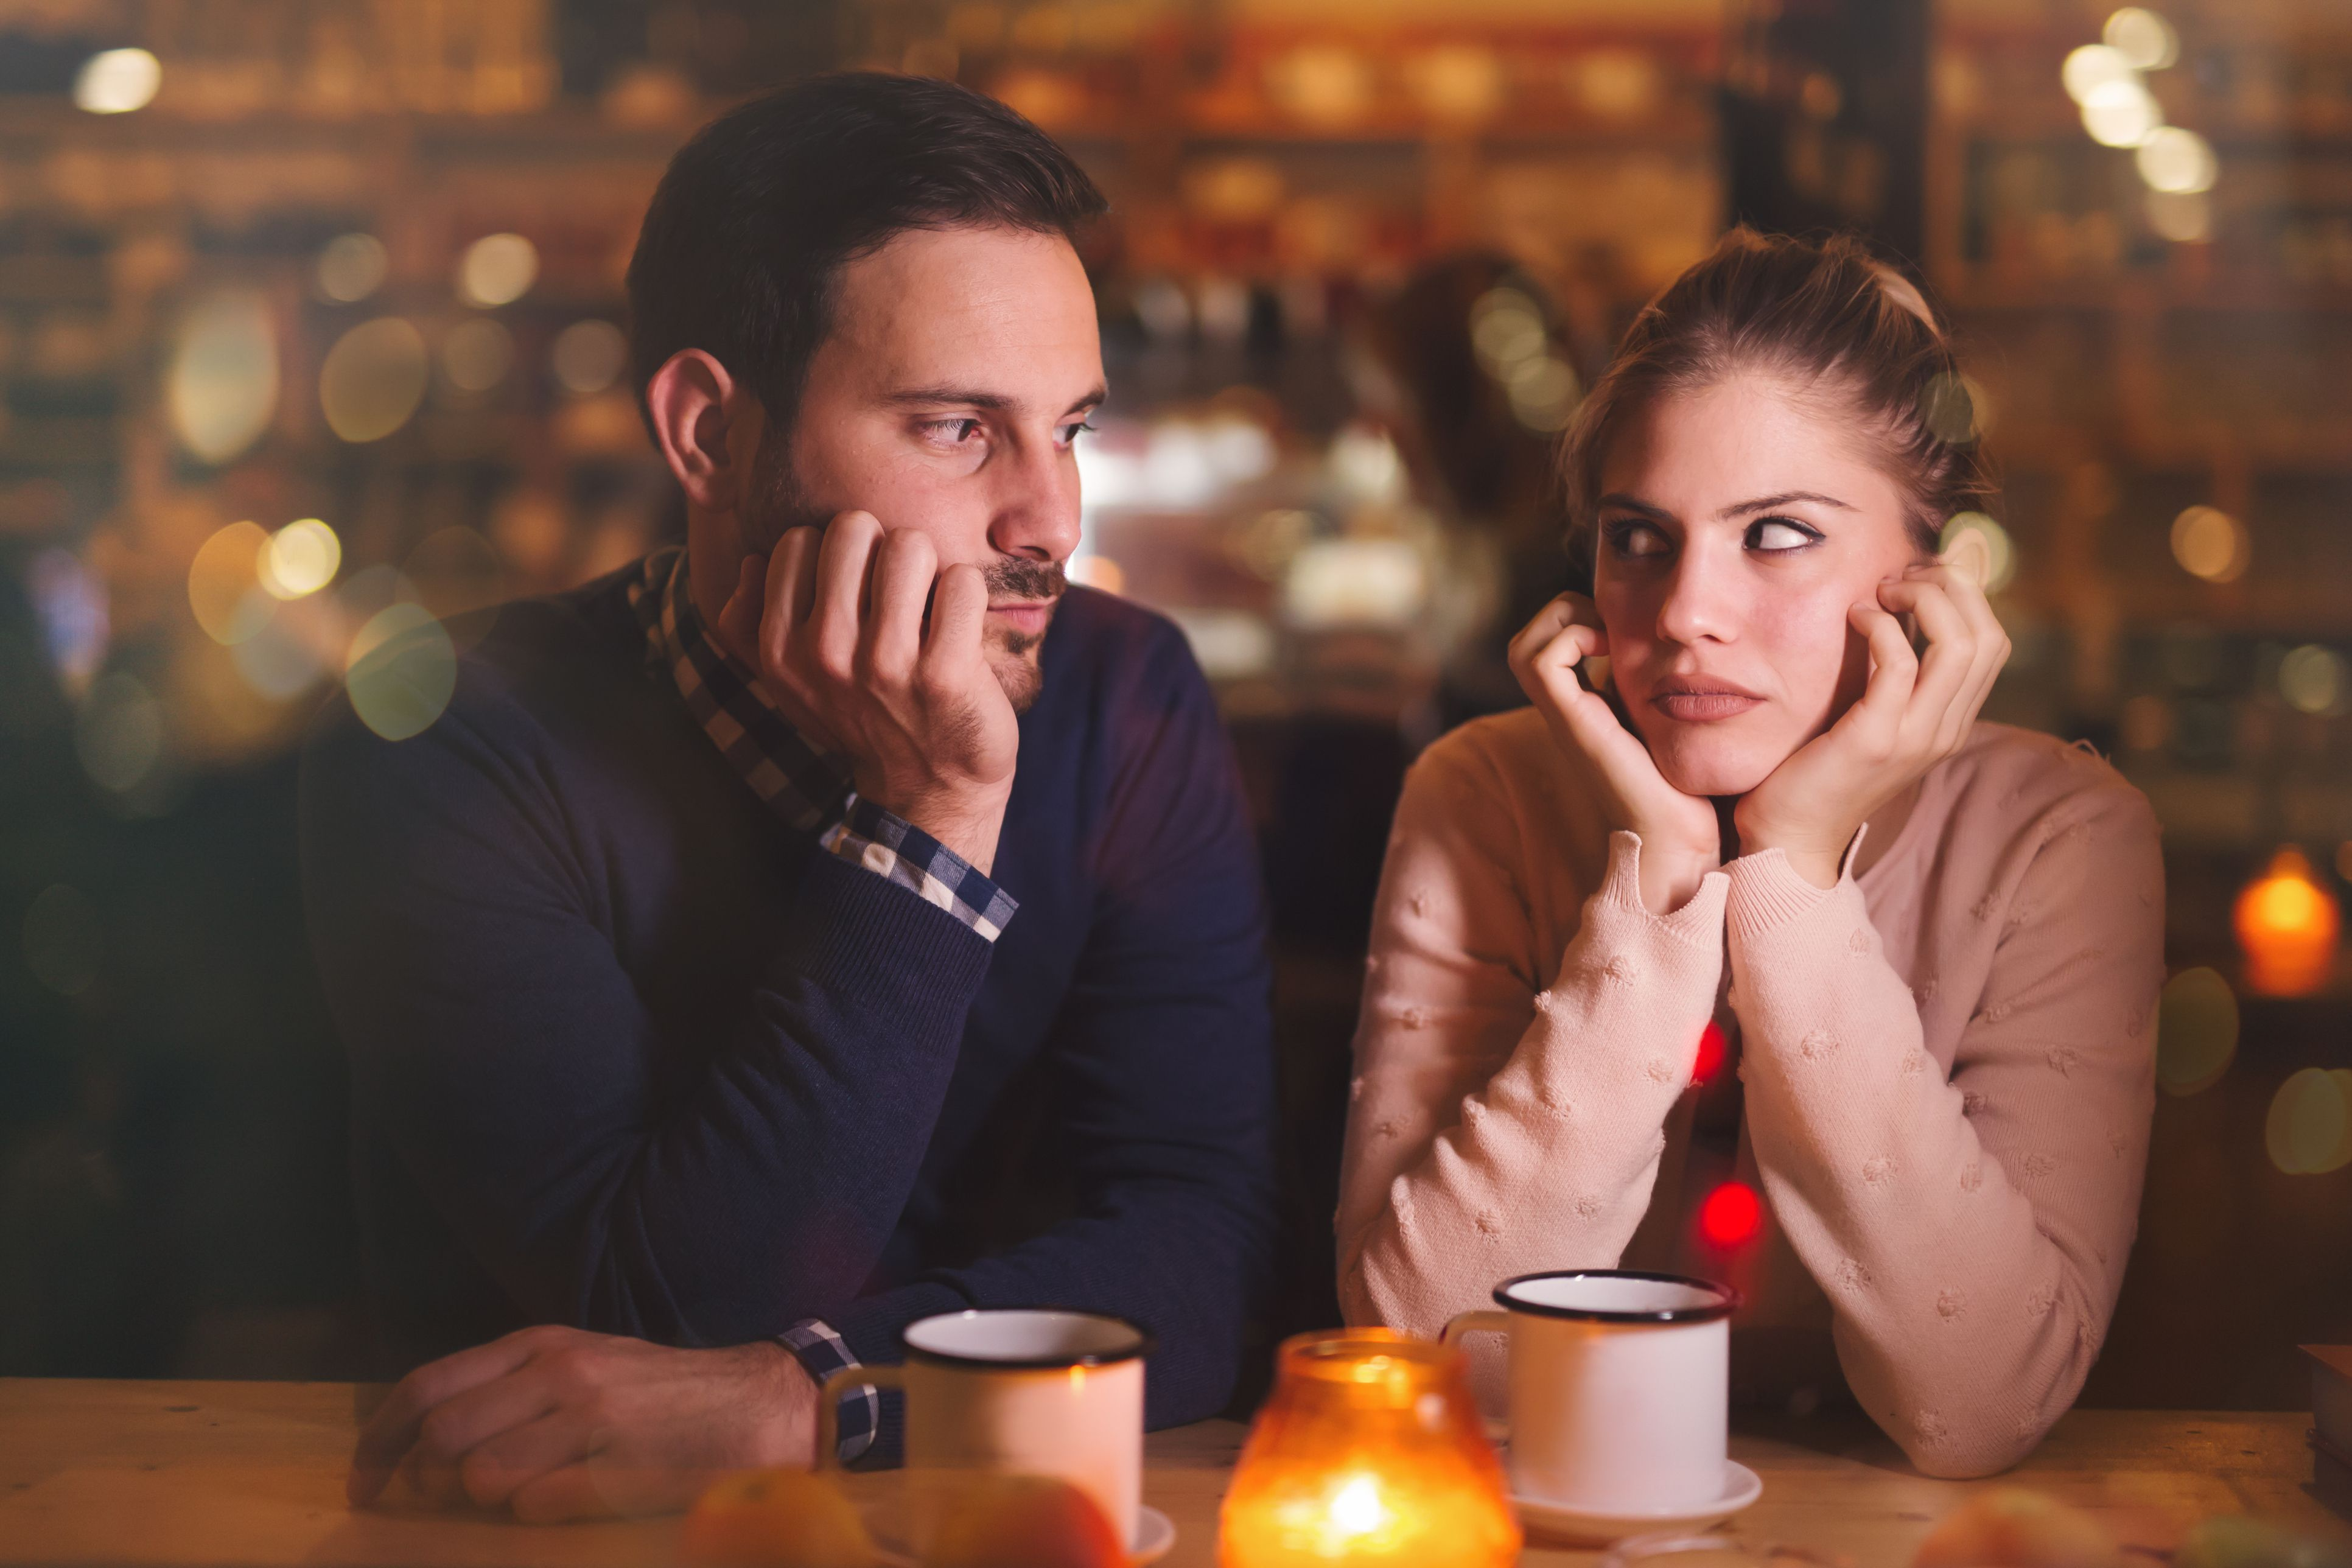 Couples who had sex on first date